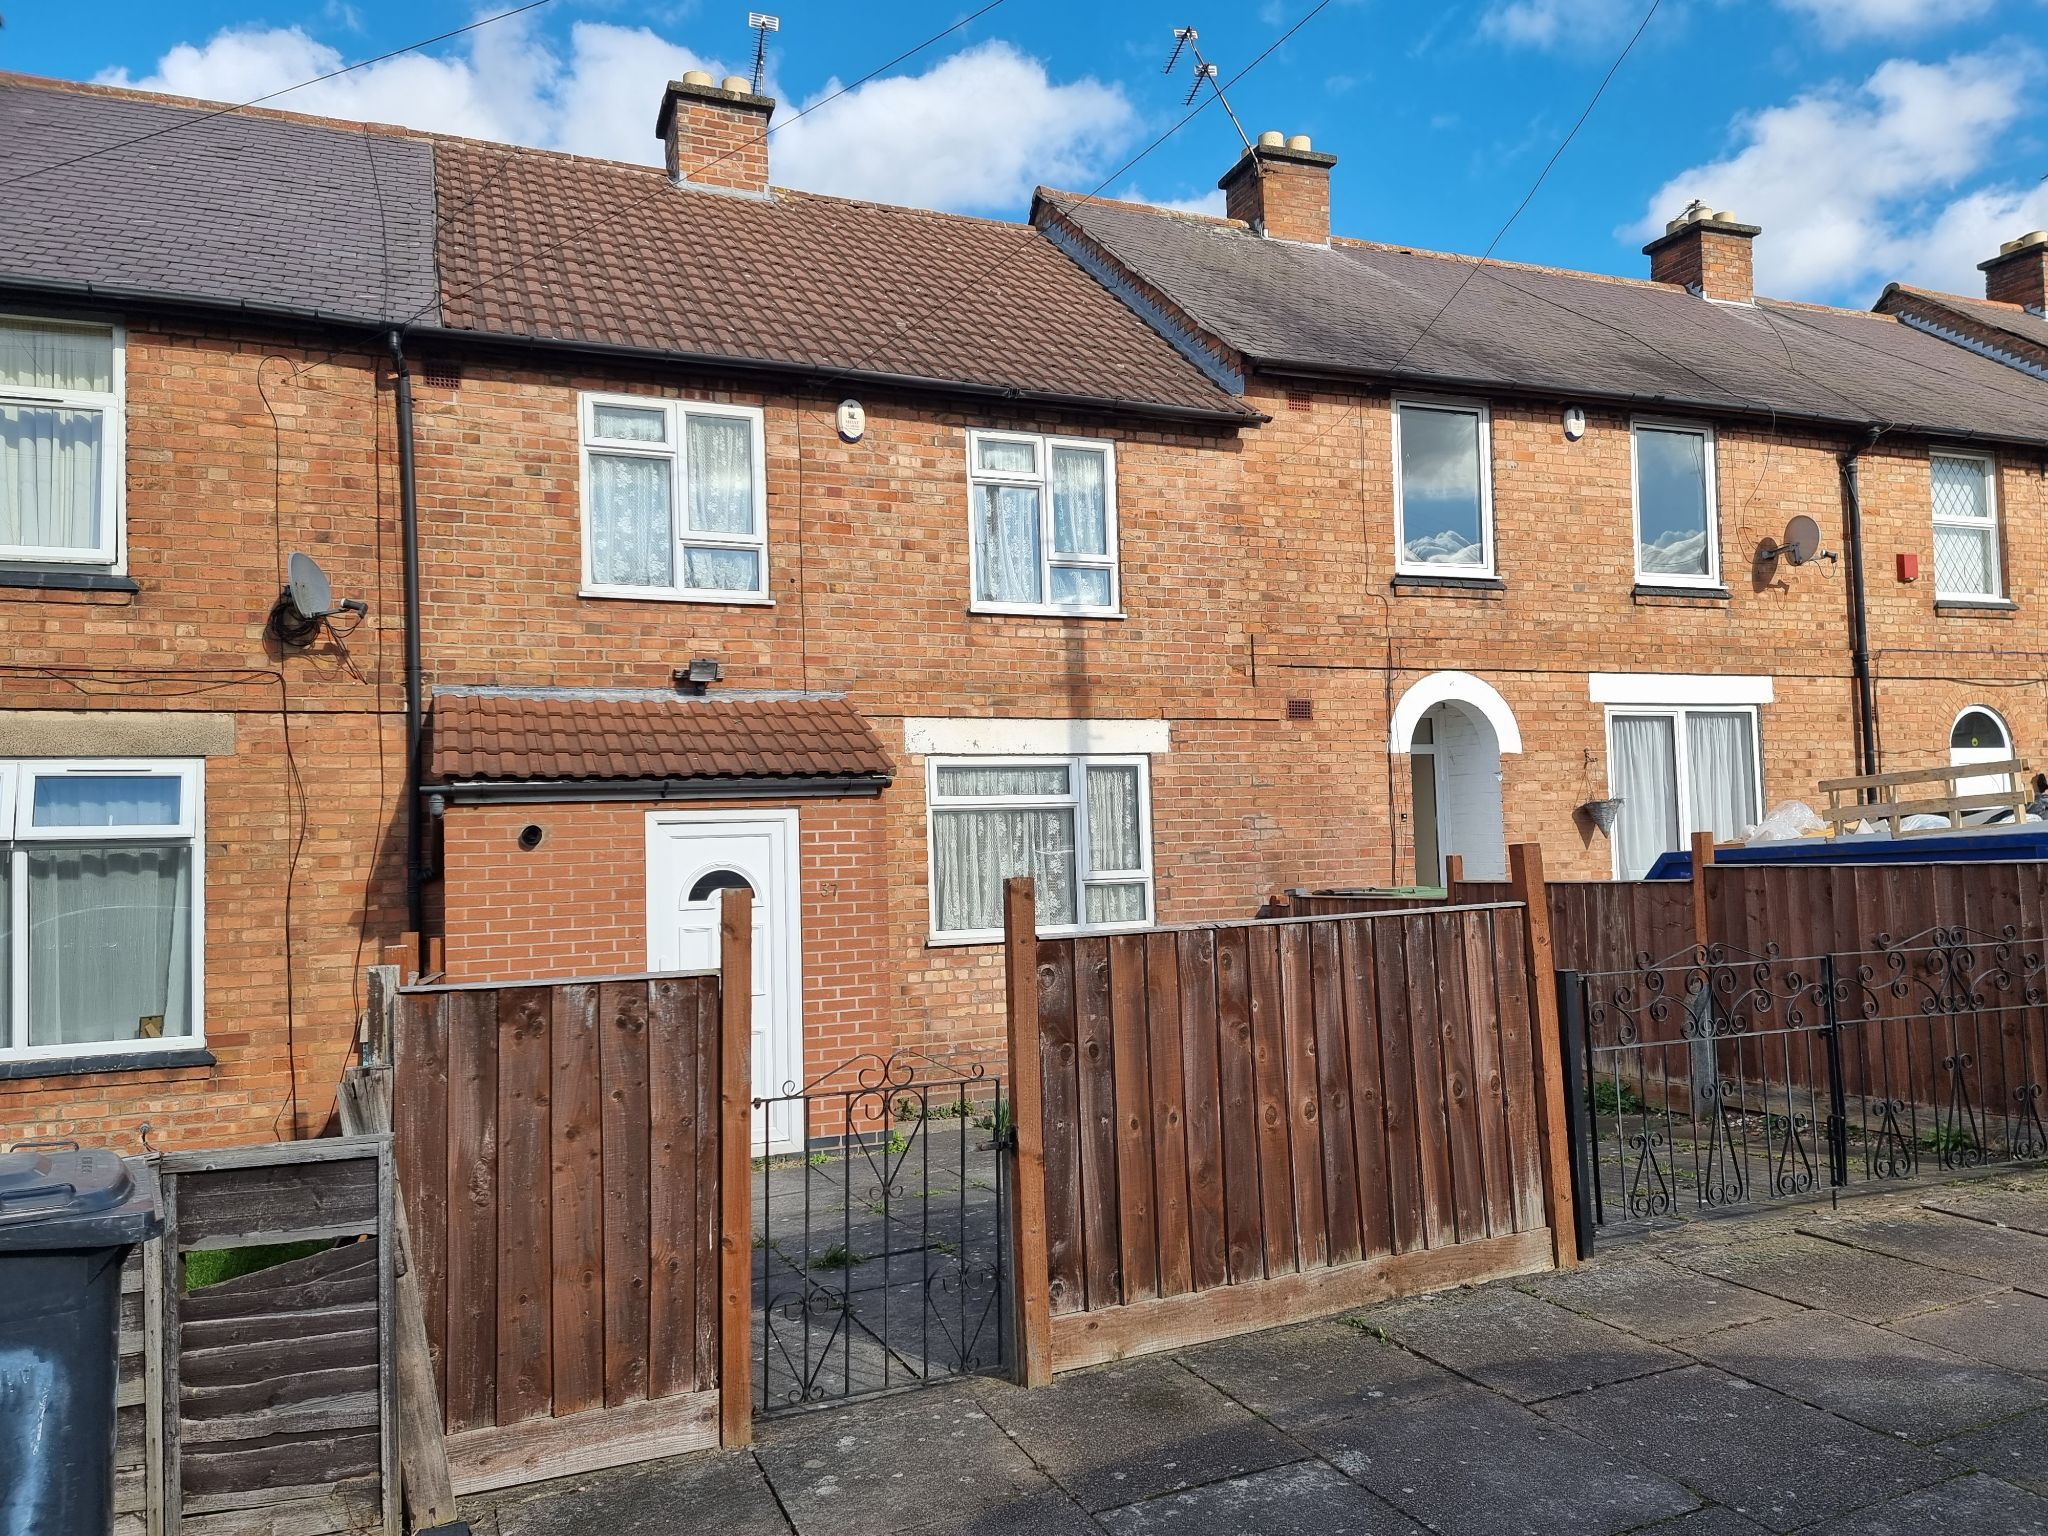 3 bedroom town house To Let in Leicester - Photograph 1.